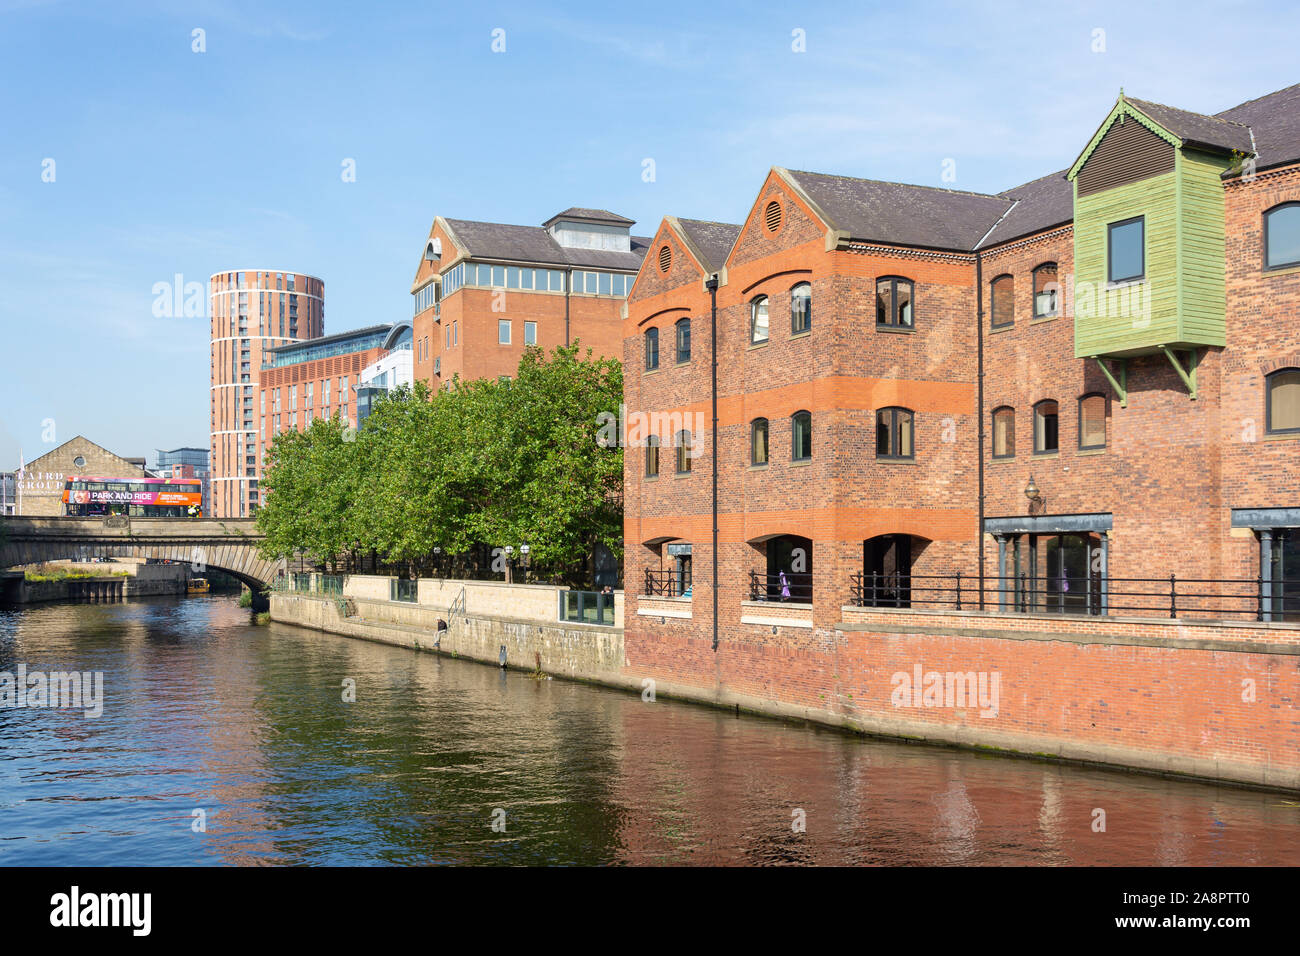 Victoria Bridge and warehouses across River Aire, Leeds, West Yorkshire, England, United Kingdom Stock Photo